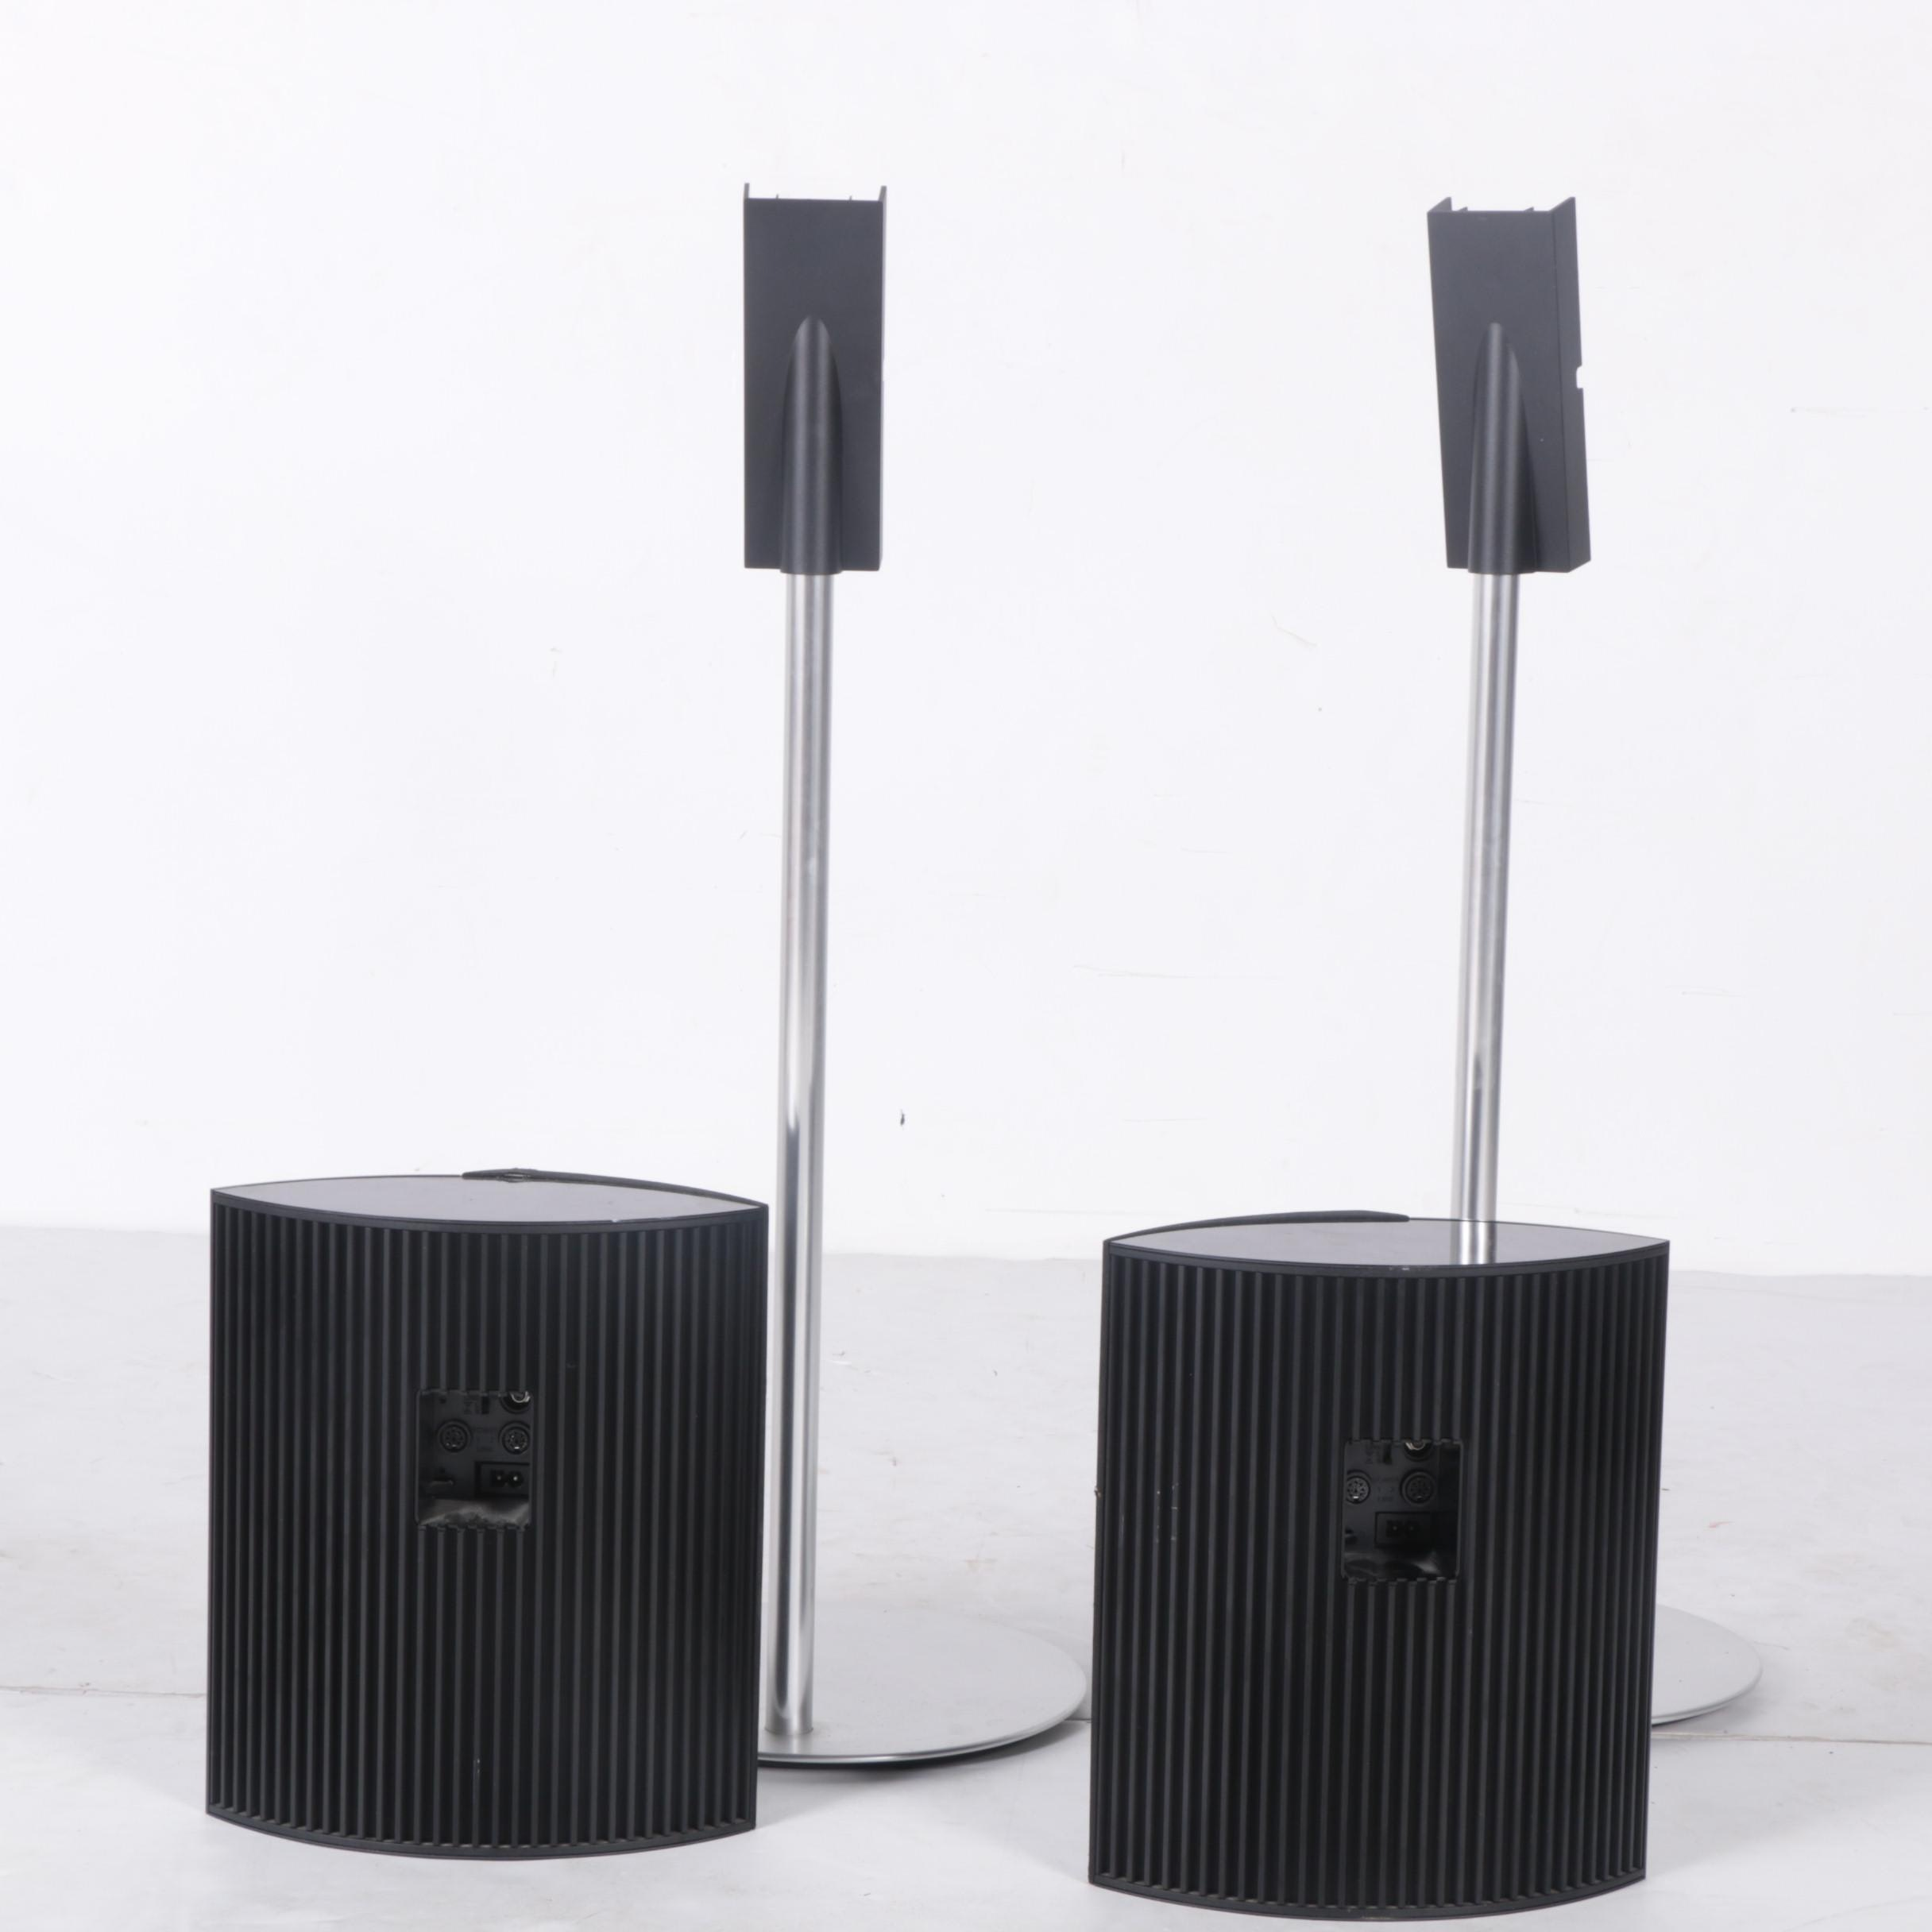 Bang & Olufsen BeoLab 4000 Speakers with Stands